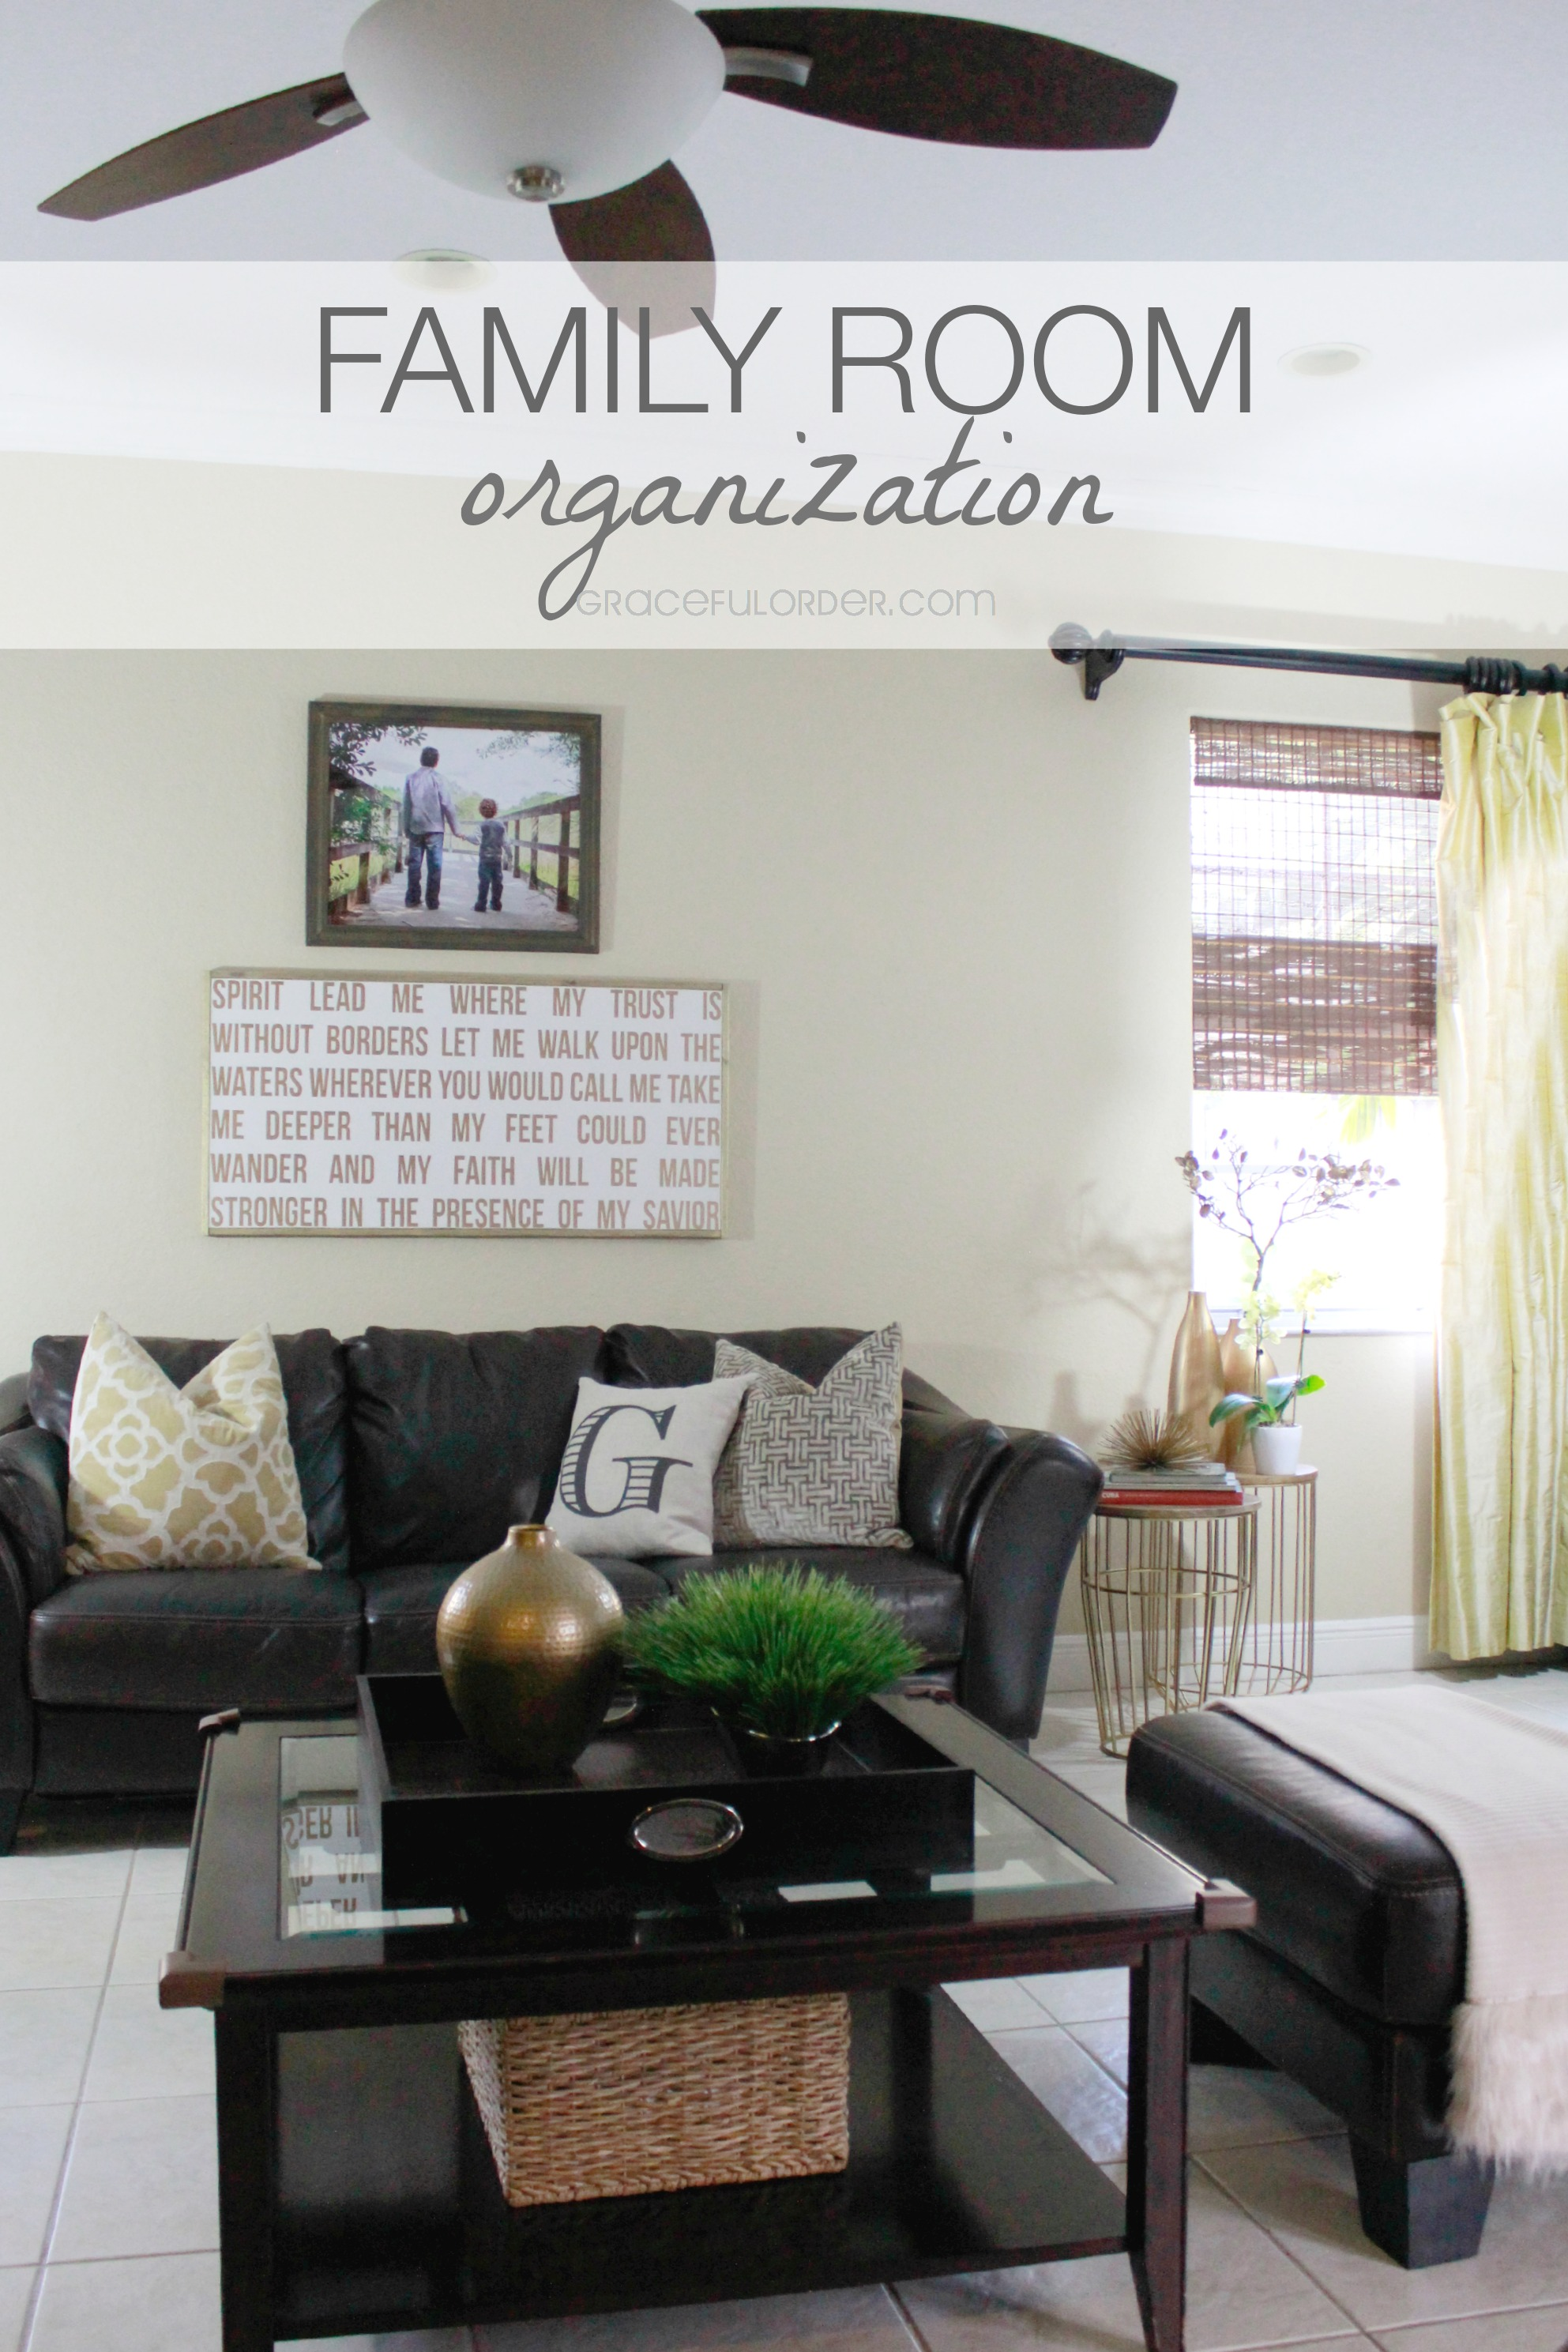 family room Archives - Graceful Order